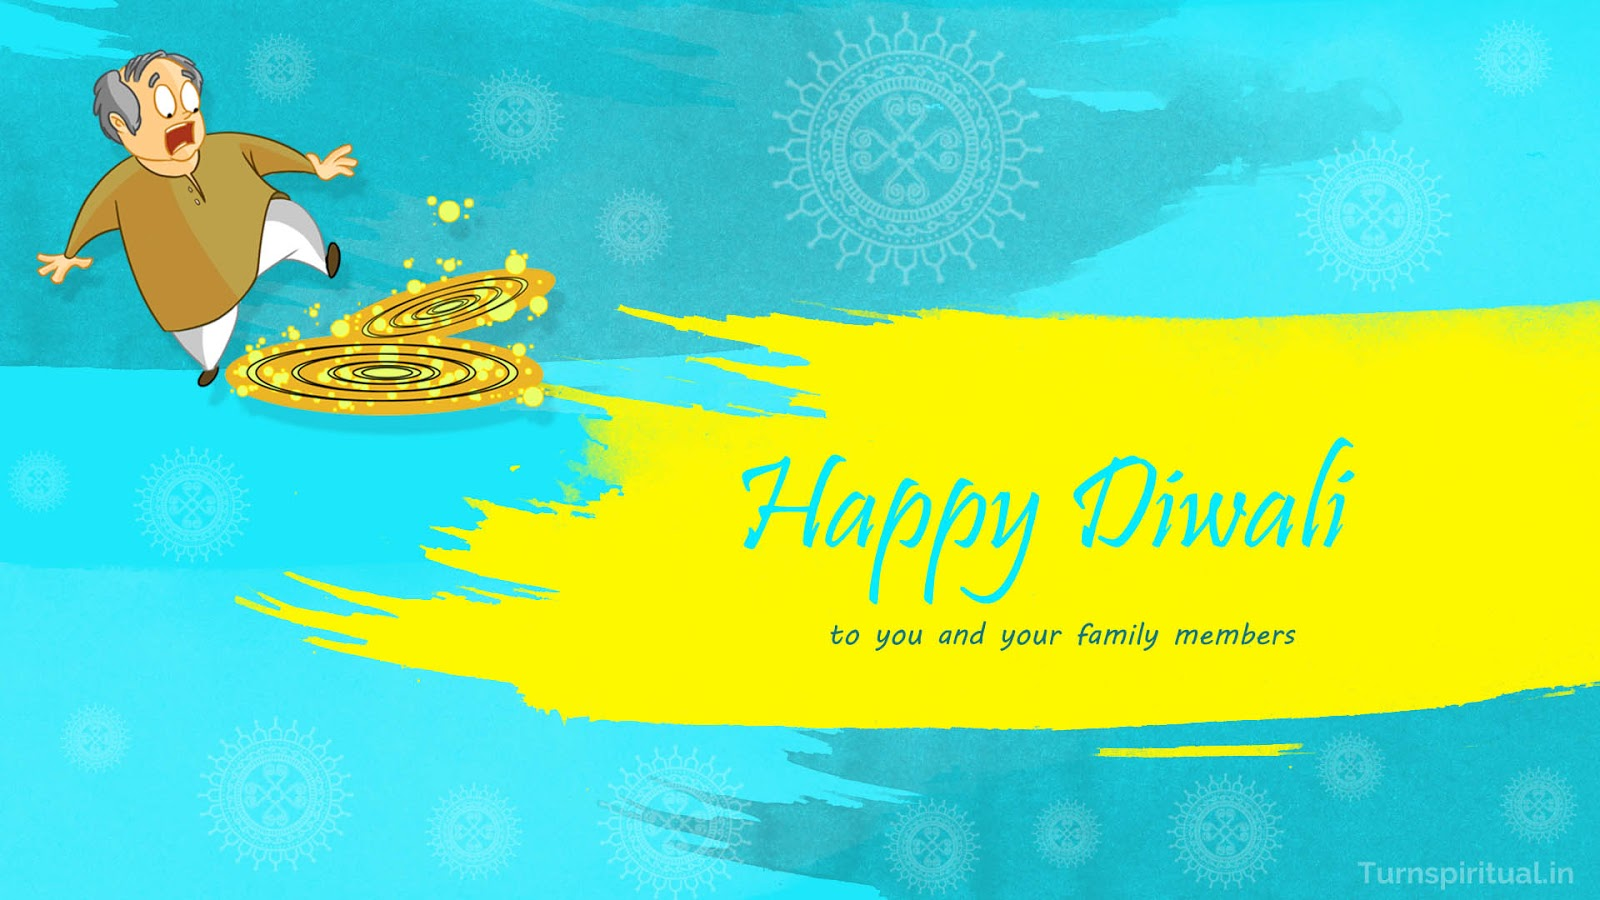 Best Happy Diwali ( Deepavali ) wishes greeting cards, images, pictures, wallpapers with crackers illustrations and rangoli decorations free download